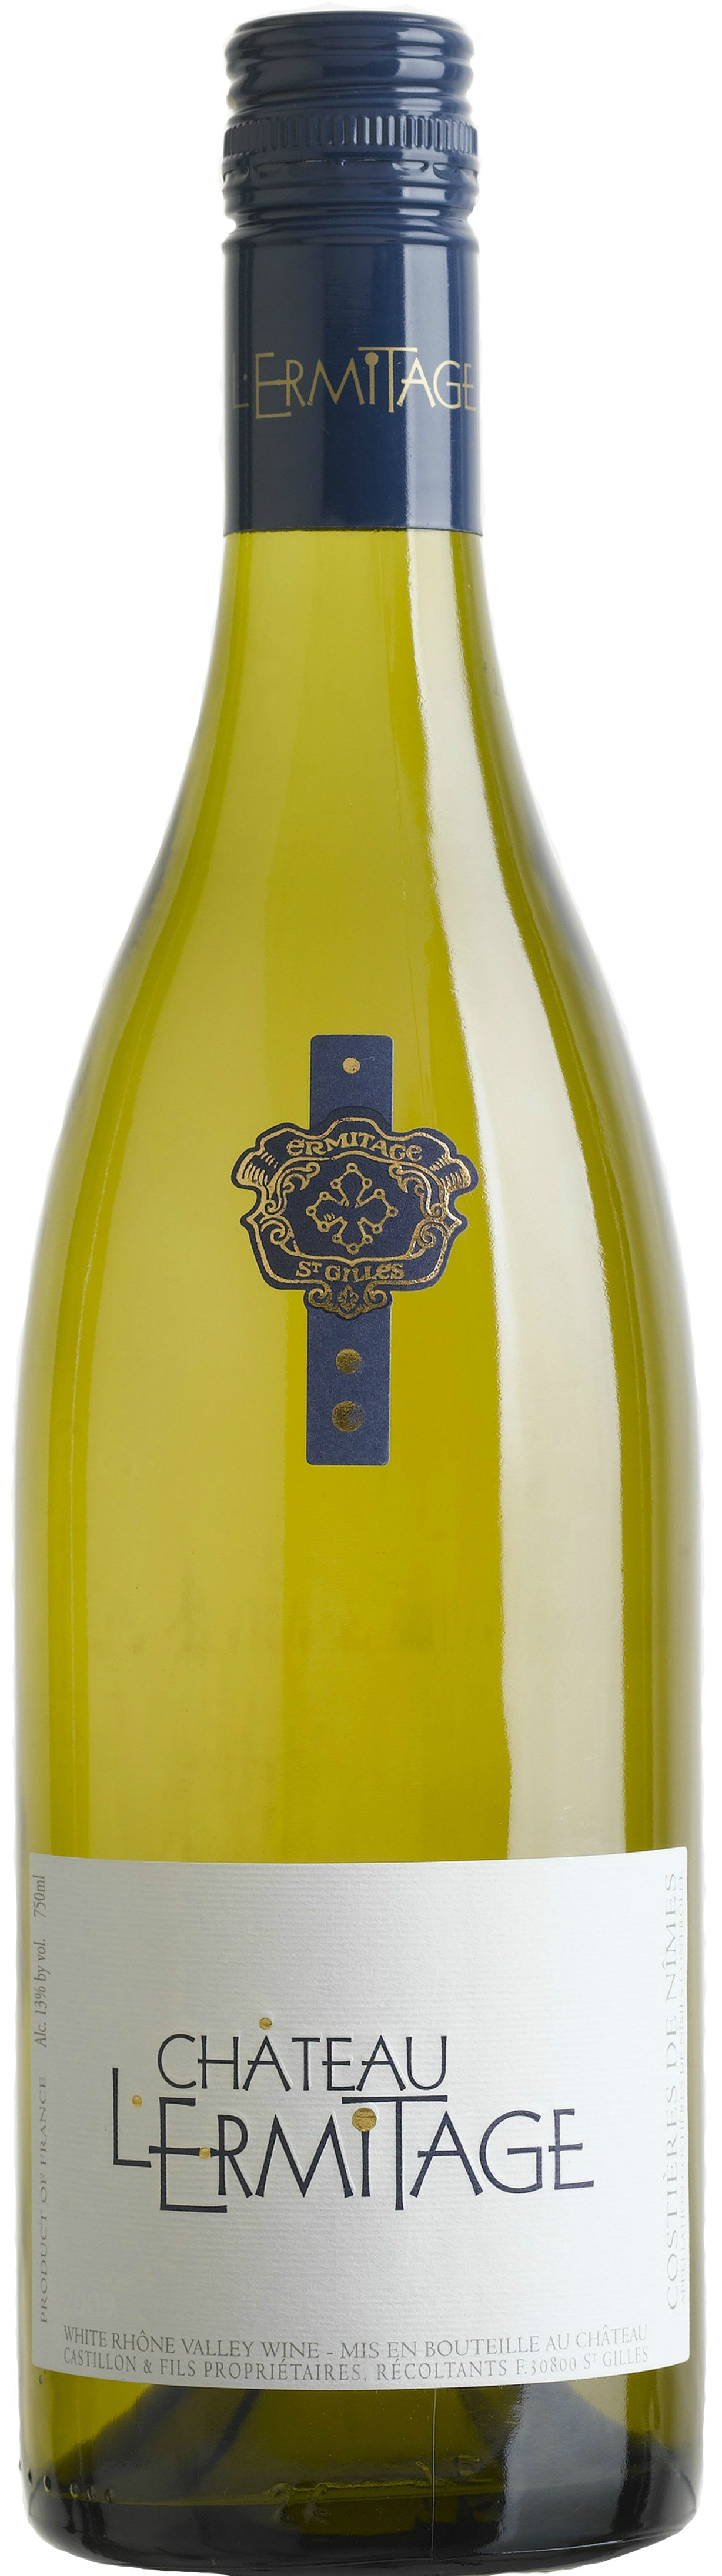 Chateau l'Ermitage, Tradition Blanc, 2016